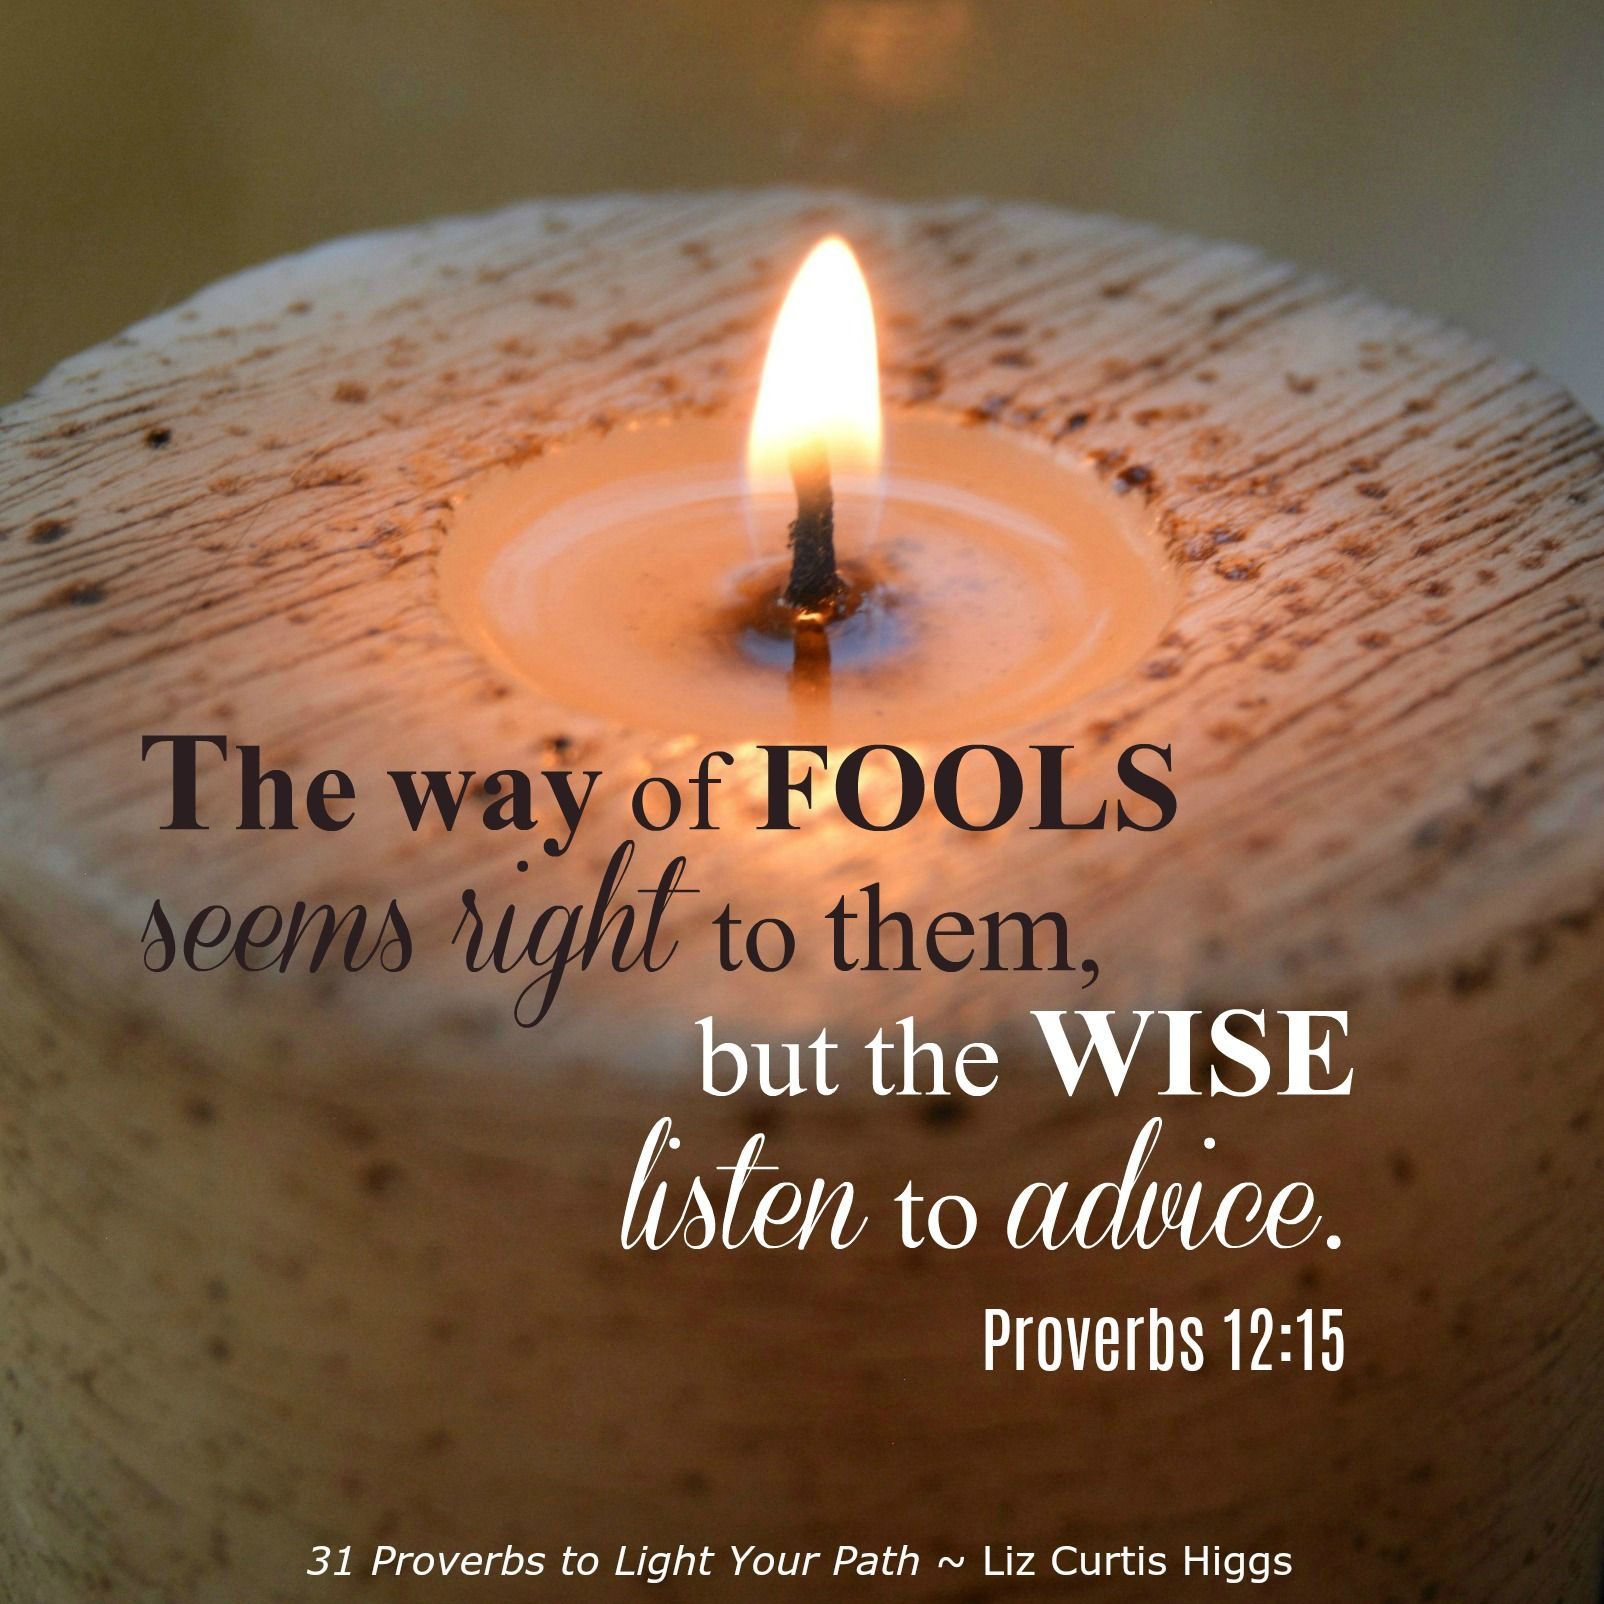 Book Of Proverbs Quotes: 31 Proverbs To Light Your Path